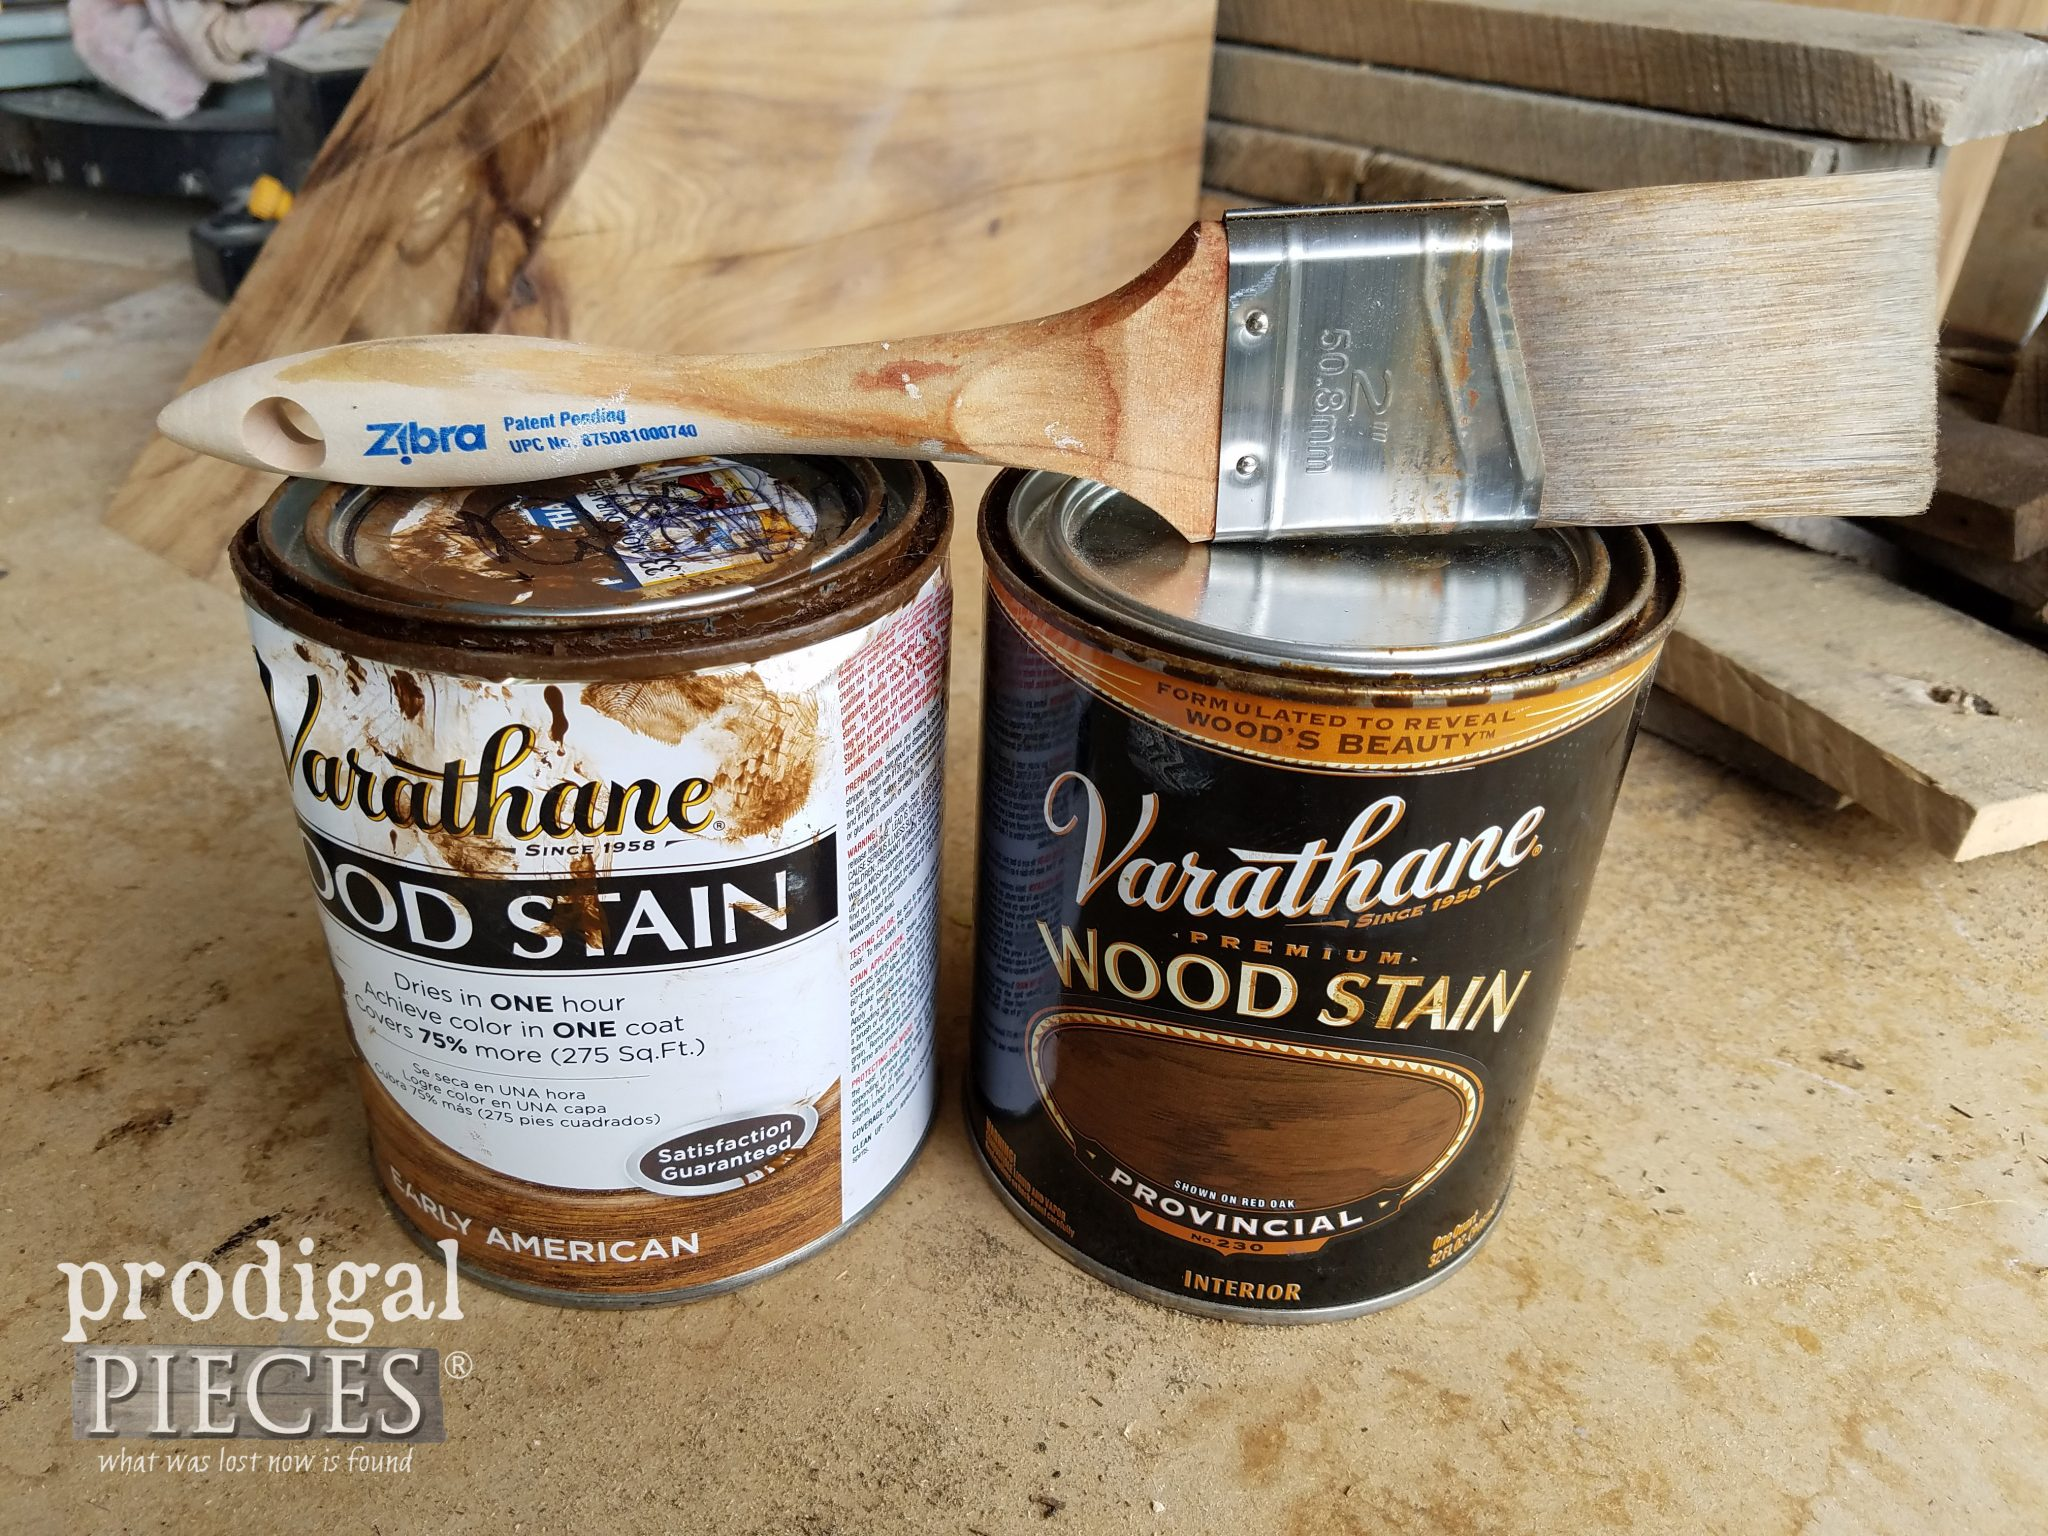 Zibra Brush and RustOleum Stains for Farmhouse Chic Look | prodigalpieces.com